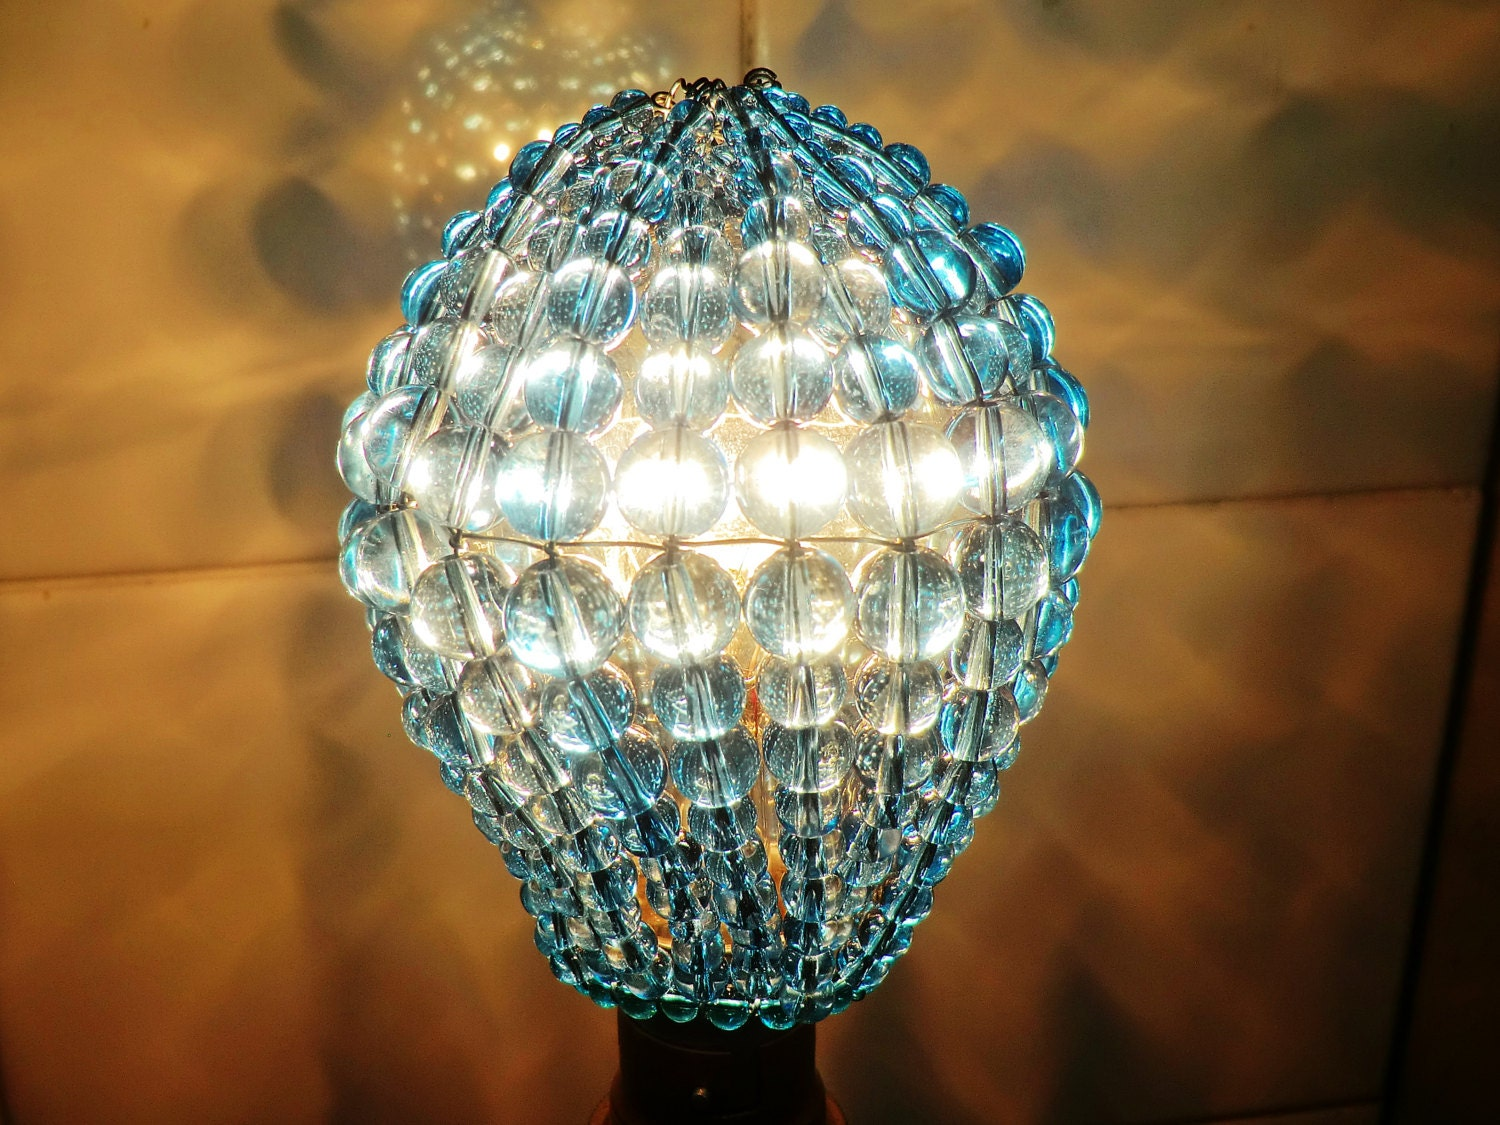 Crystal chandelier inspired glass lightbulb gls bulb cover sleeve crystal chandelier inspired glass lightbulb gls bulb cover sleeve pendant lamp aqua turquoise lamp shade light teal drops beads moroccan mozeypictures